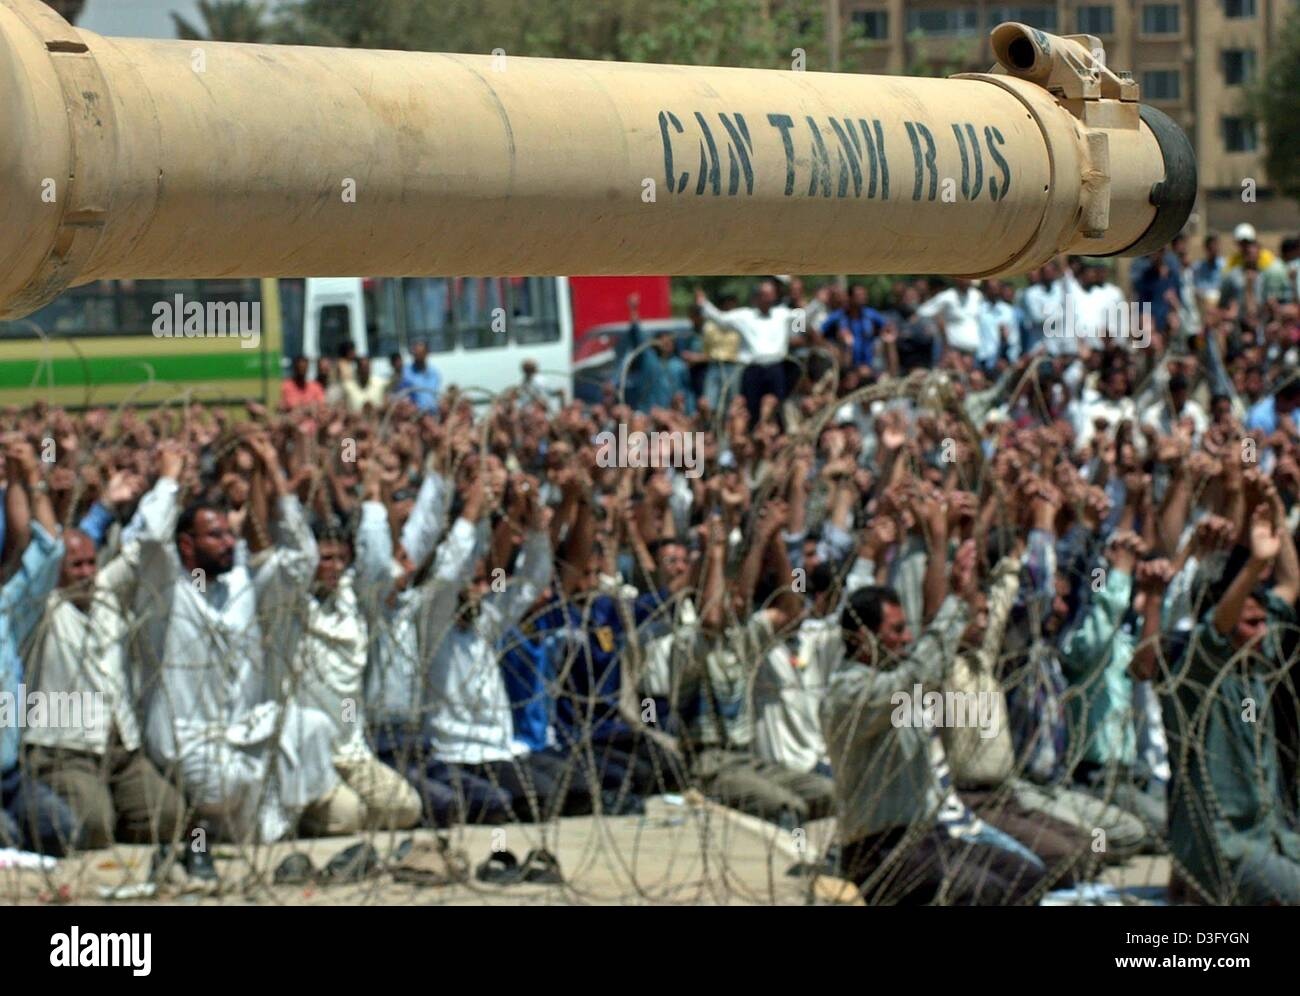 (dpa) - Behind a tank barrel Iraqi Shiites pray after a protest in the center of Baghdad, Iraq's capital, 28 - Stock Image